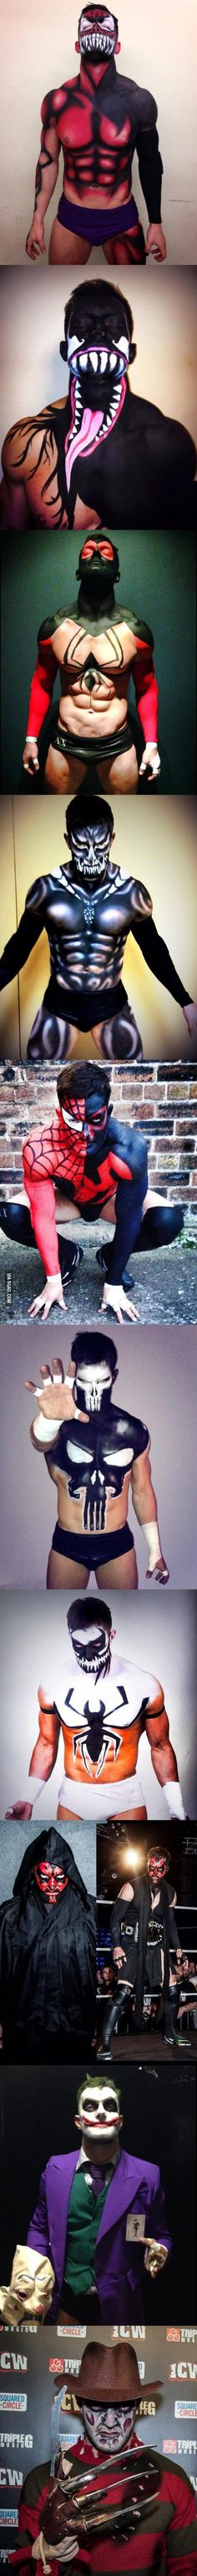 Irish pro wrestler Prince Devitt puts on amazing bodypaints before stepping into the ring each time.